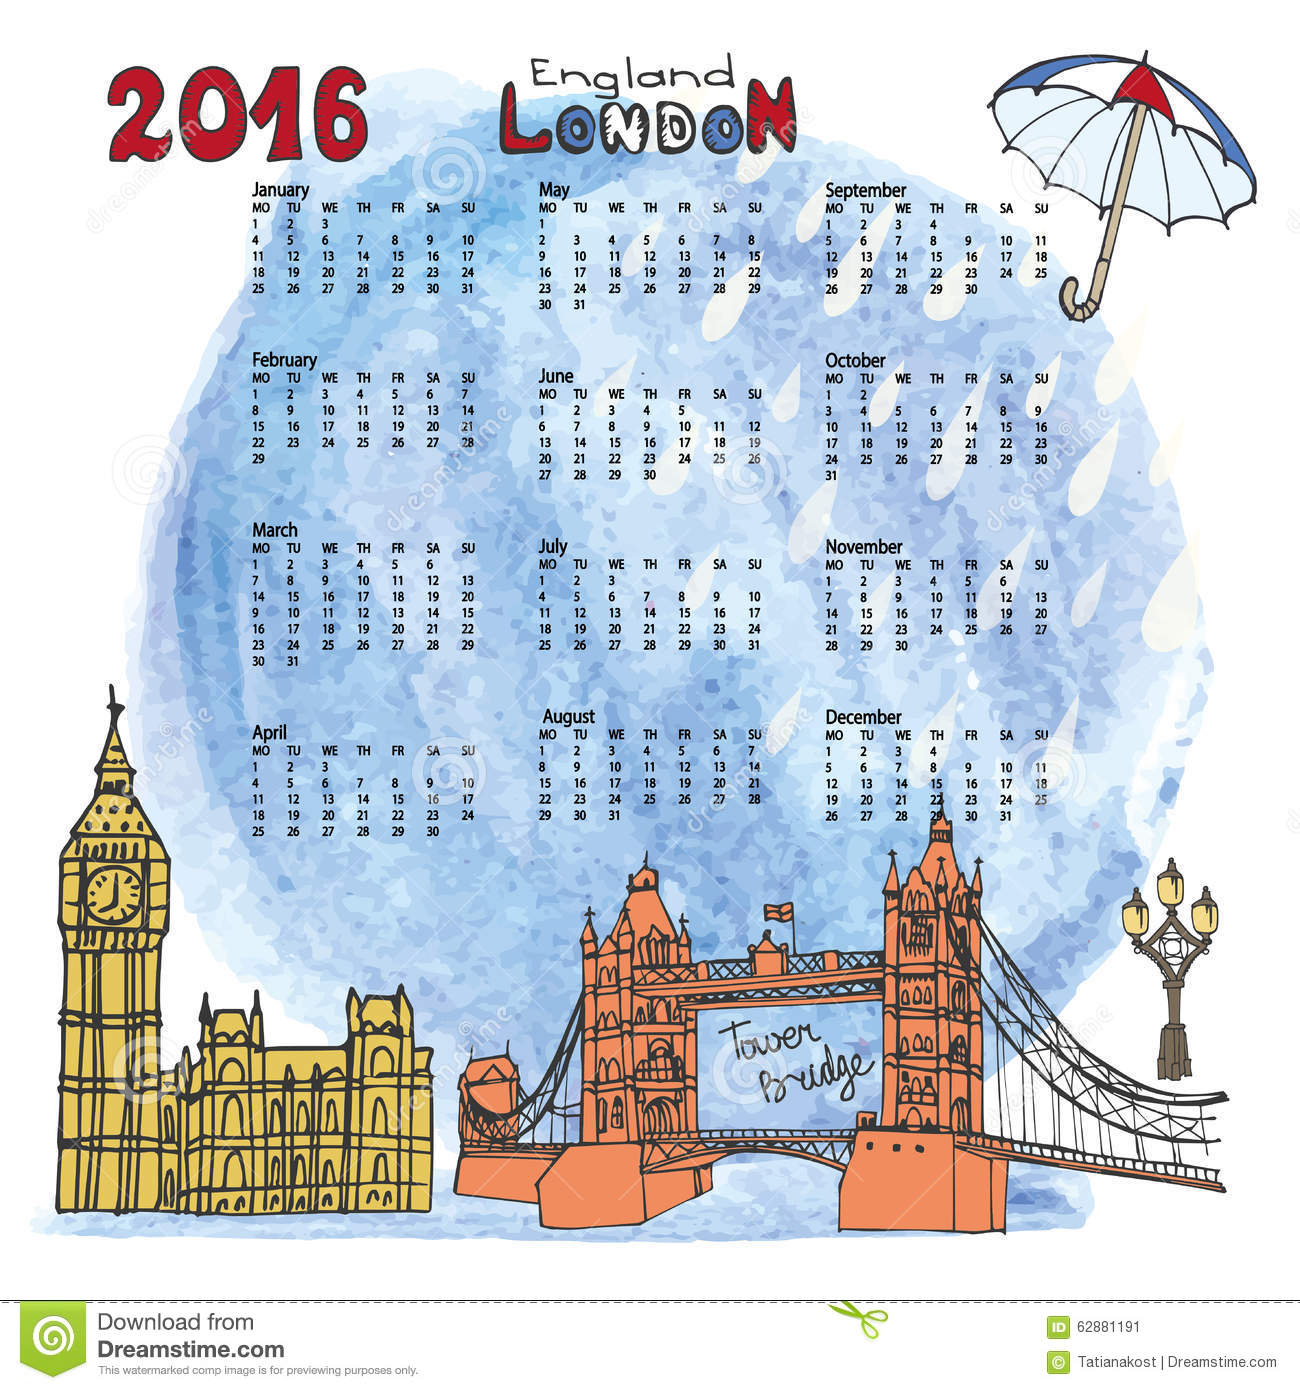 Panorama Calendario.Calendar 2016 London Landmarks Panorama Watercolor Stock Vector